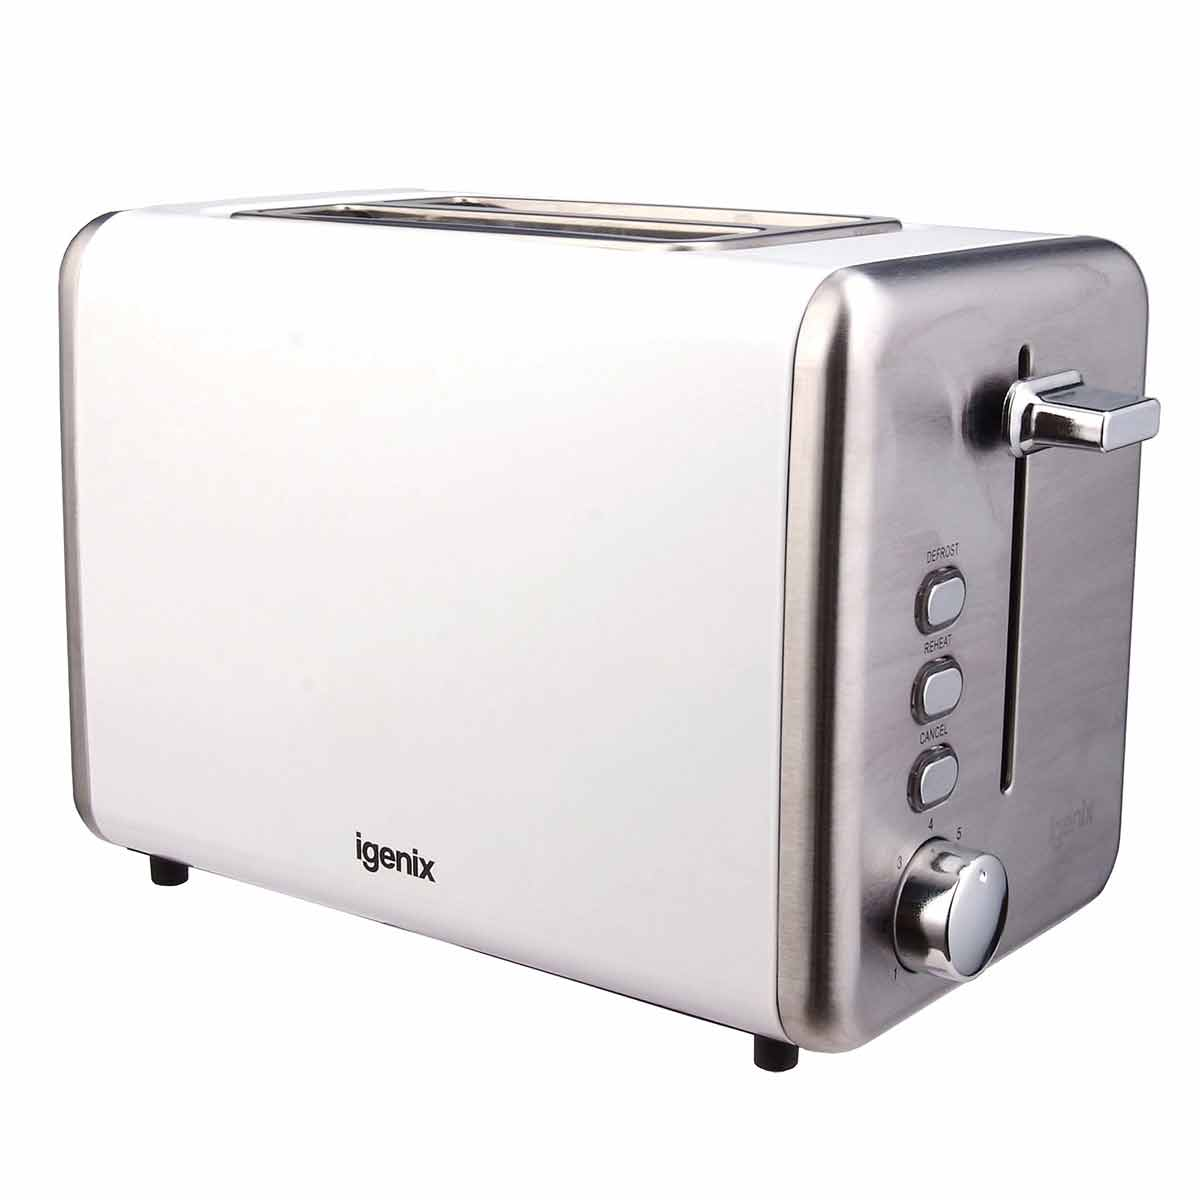 Igenix 2 Slice Toaster with Stainless Steel, White